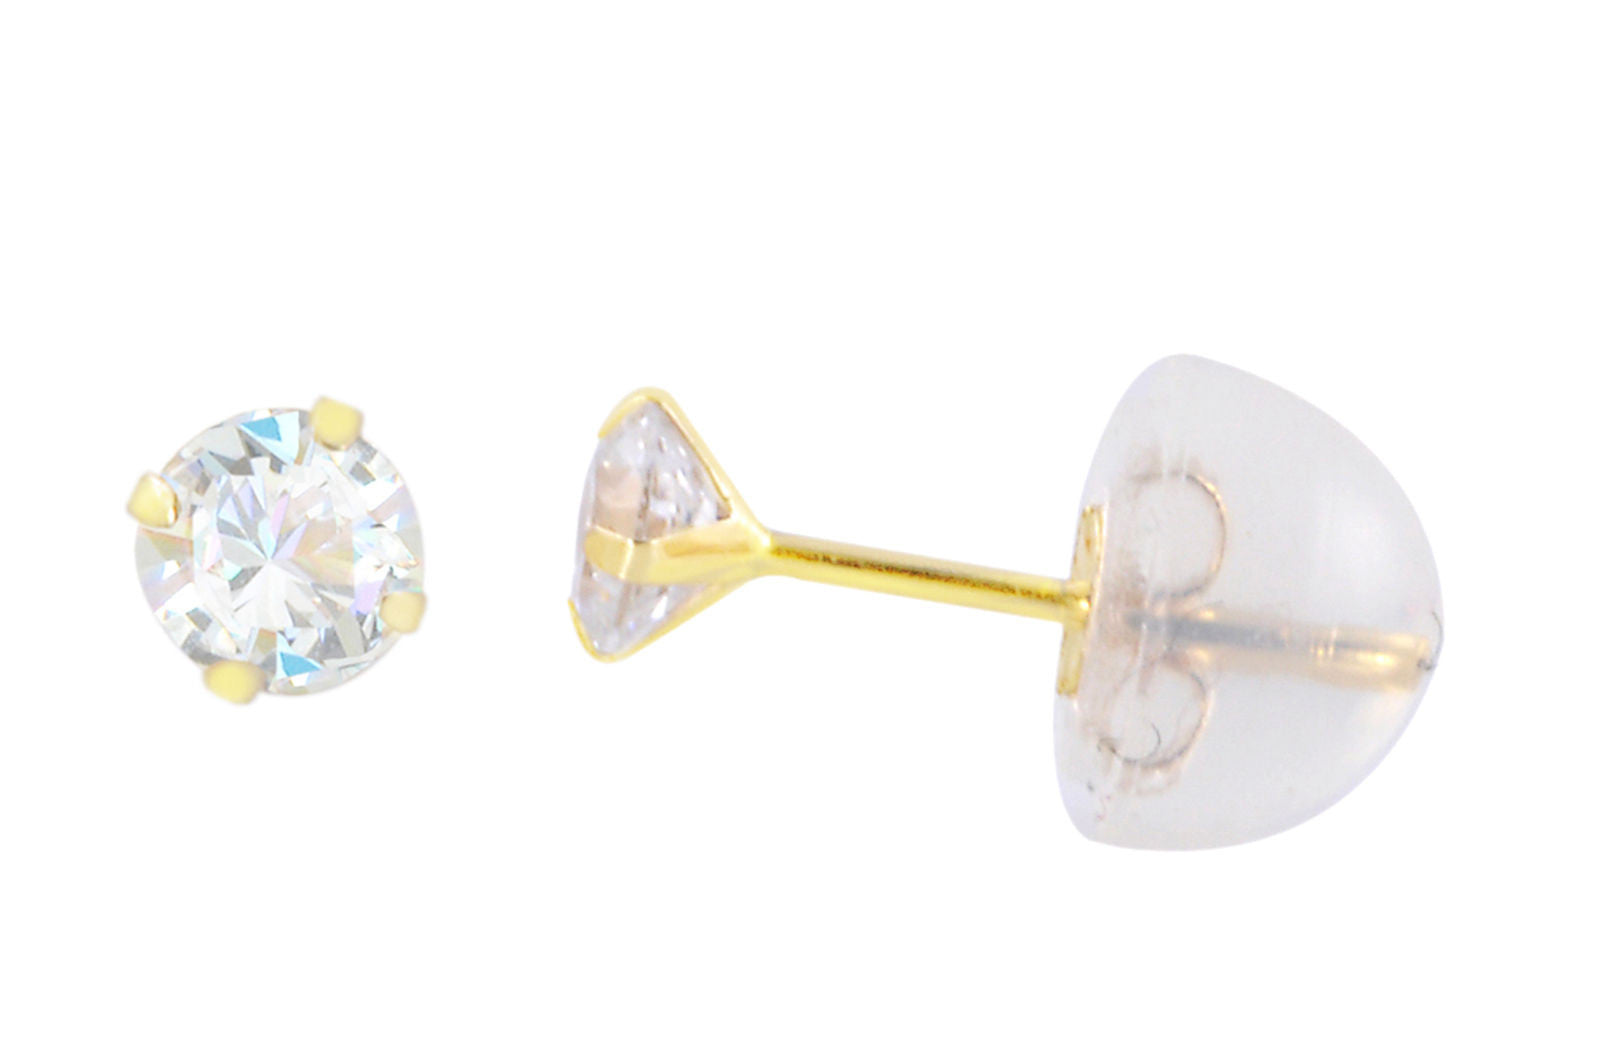 b3a9daea8 14k Yellow Gold Round CZ Cubic Zirconia Stud Earrings with Safety Silicone  Backs